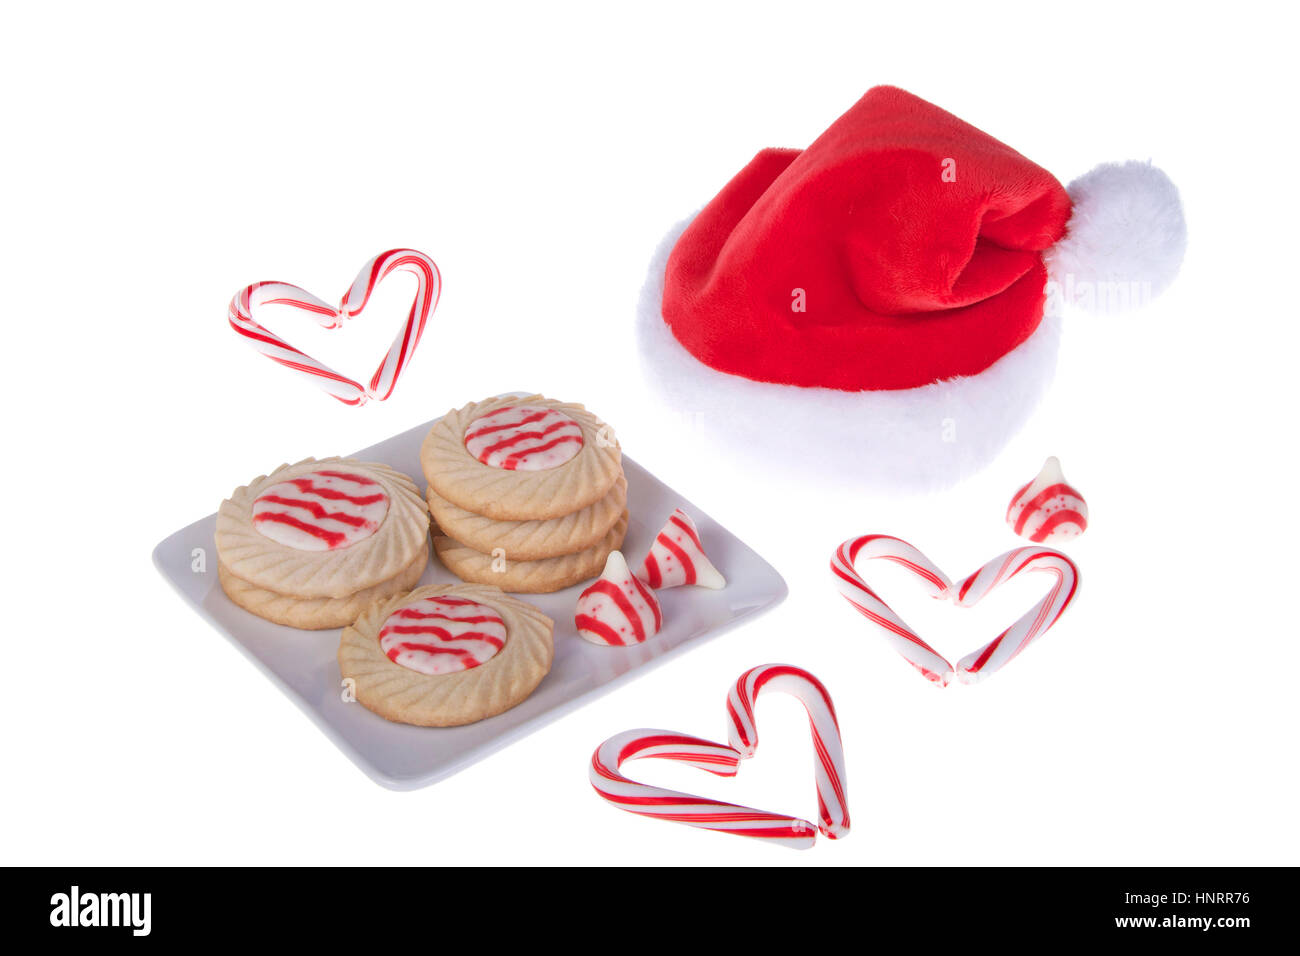 Home Made Candy Cane Stripped Peppermint Flavor Sugar Cookies On A